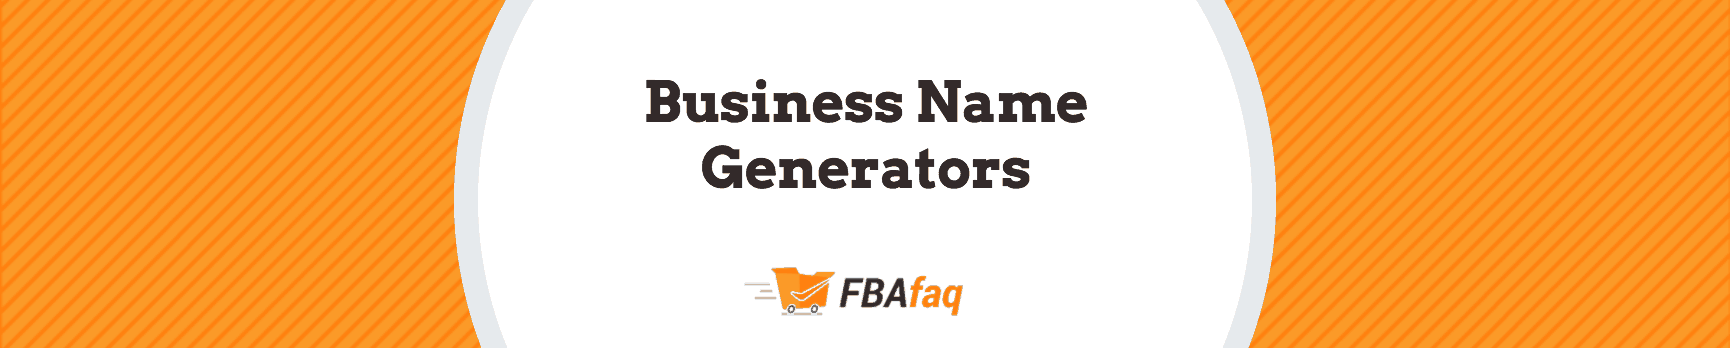 Business name generators